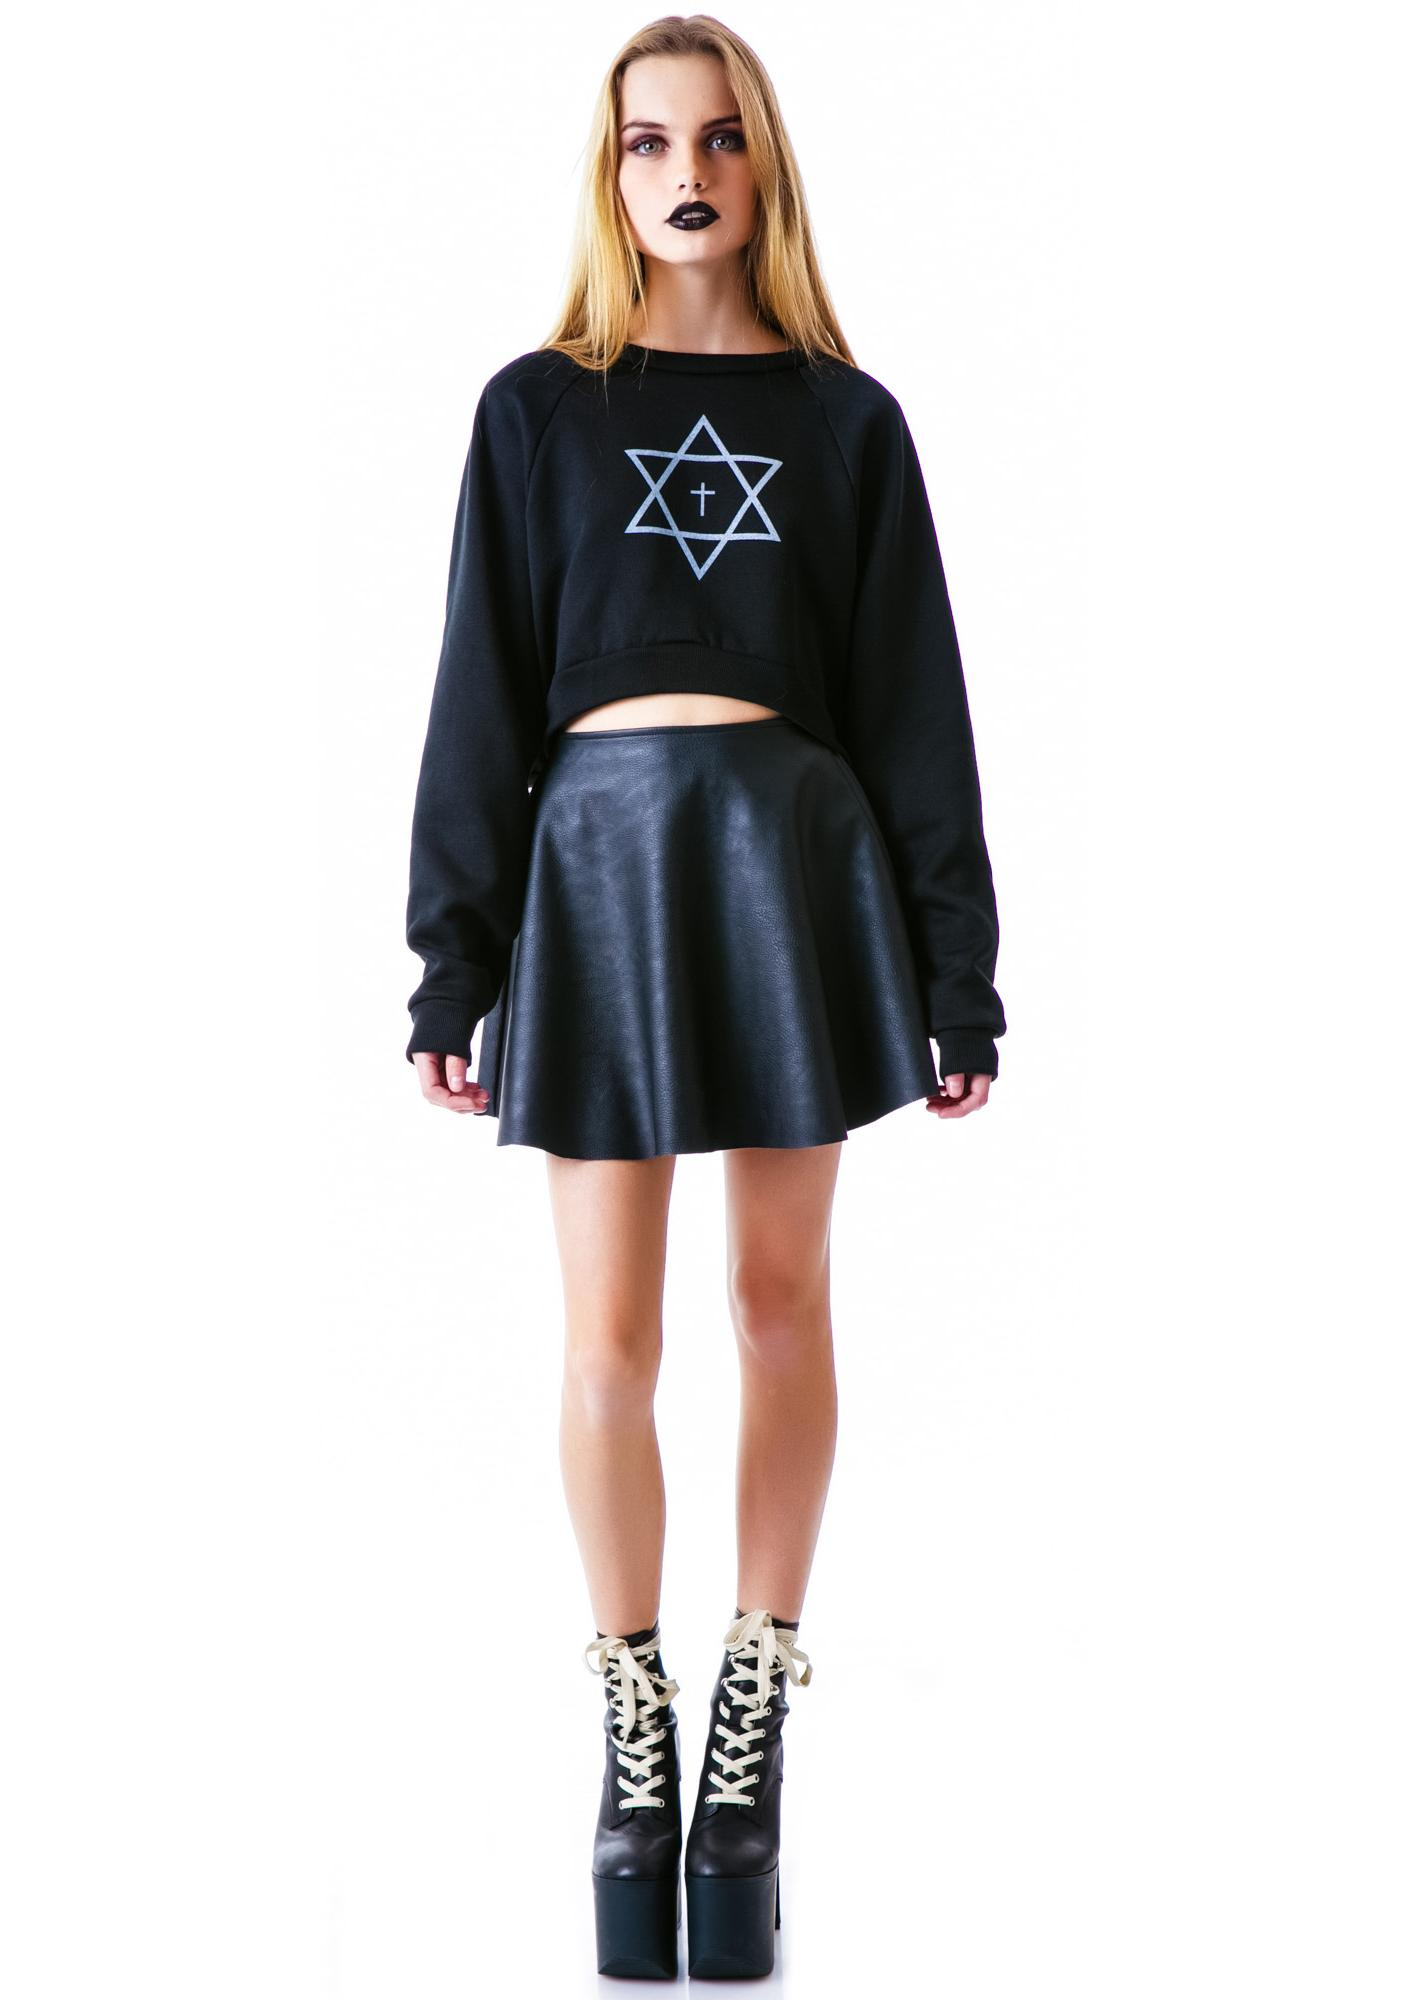 United Couture Trippy Cropped Sweatshirt